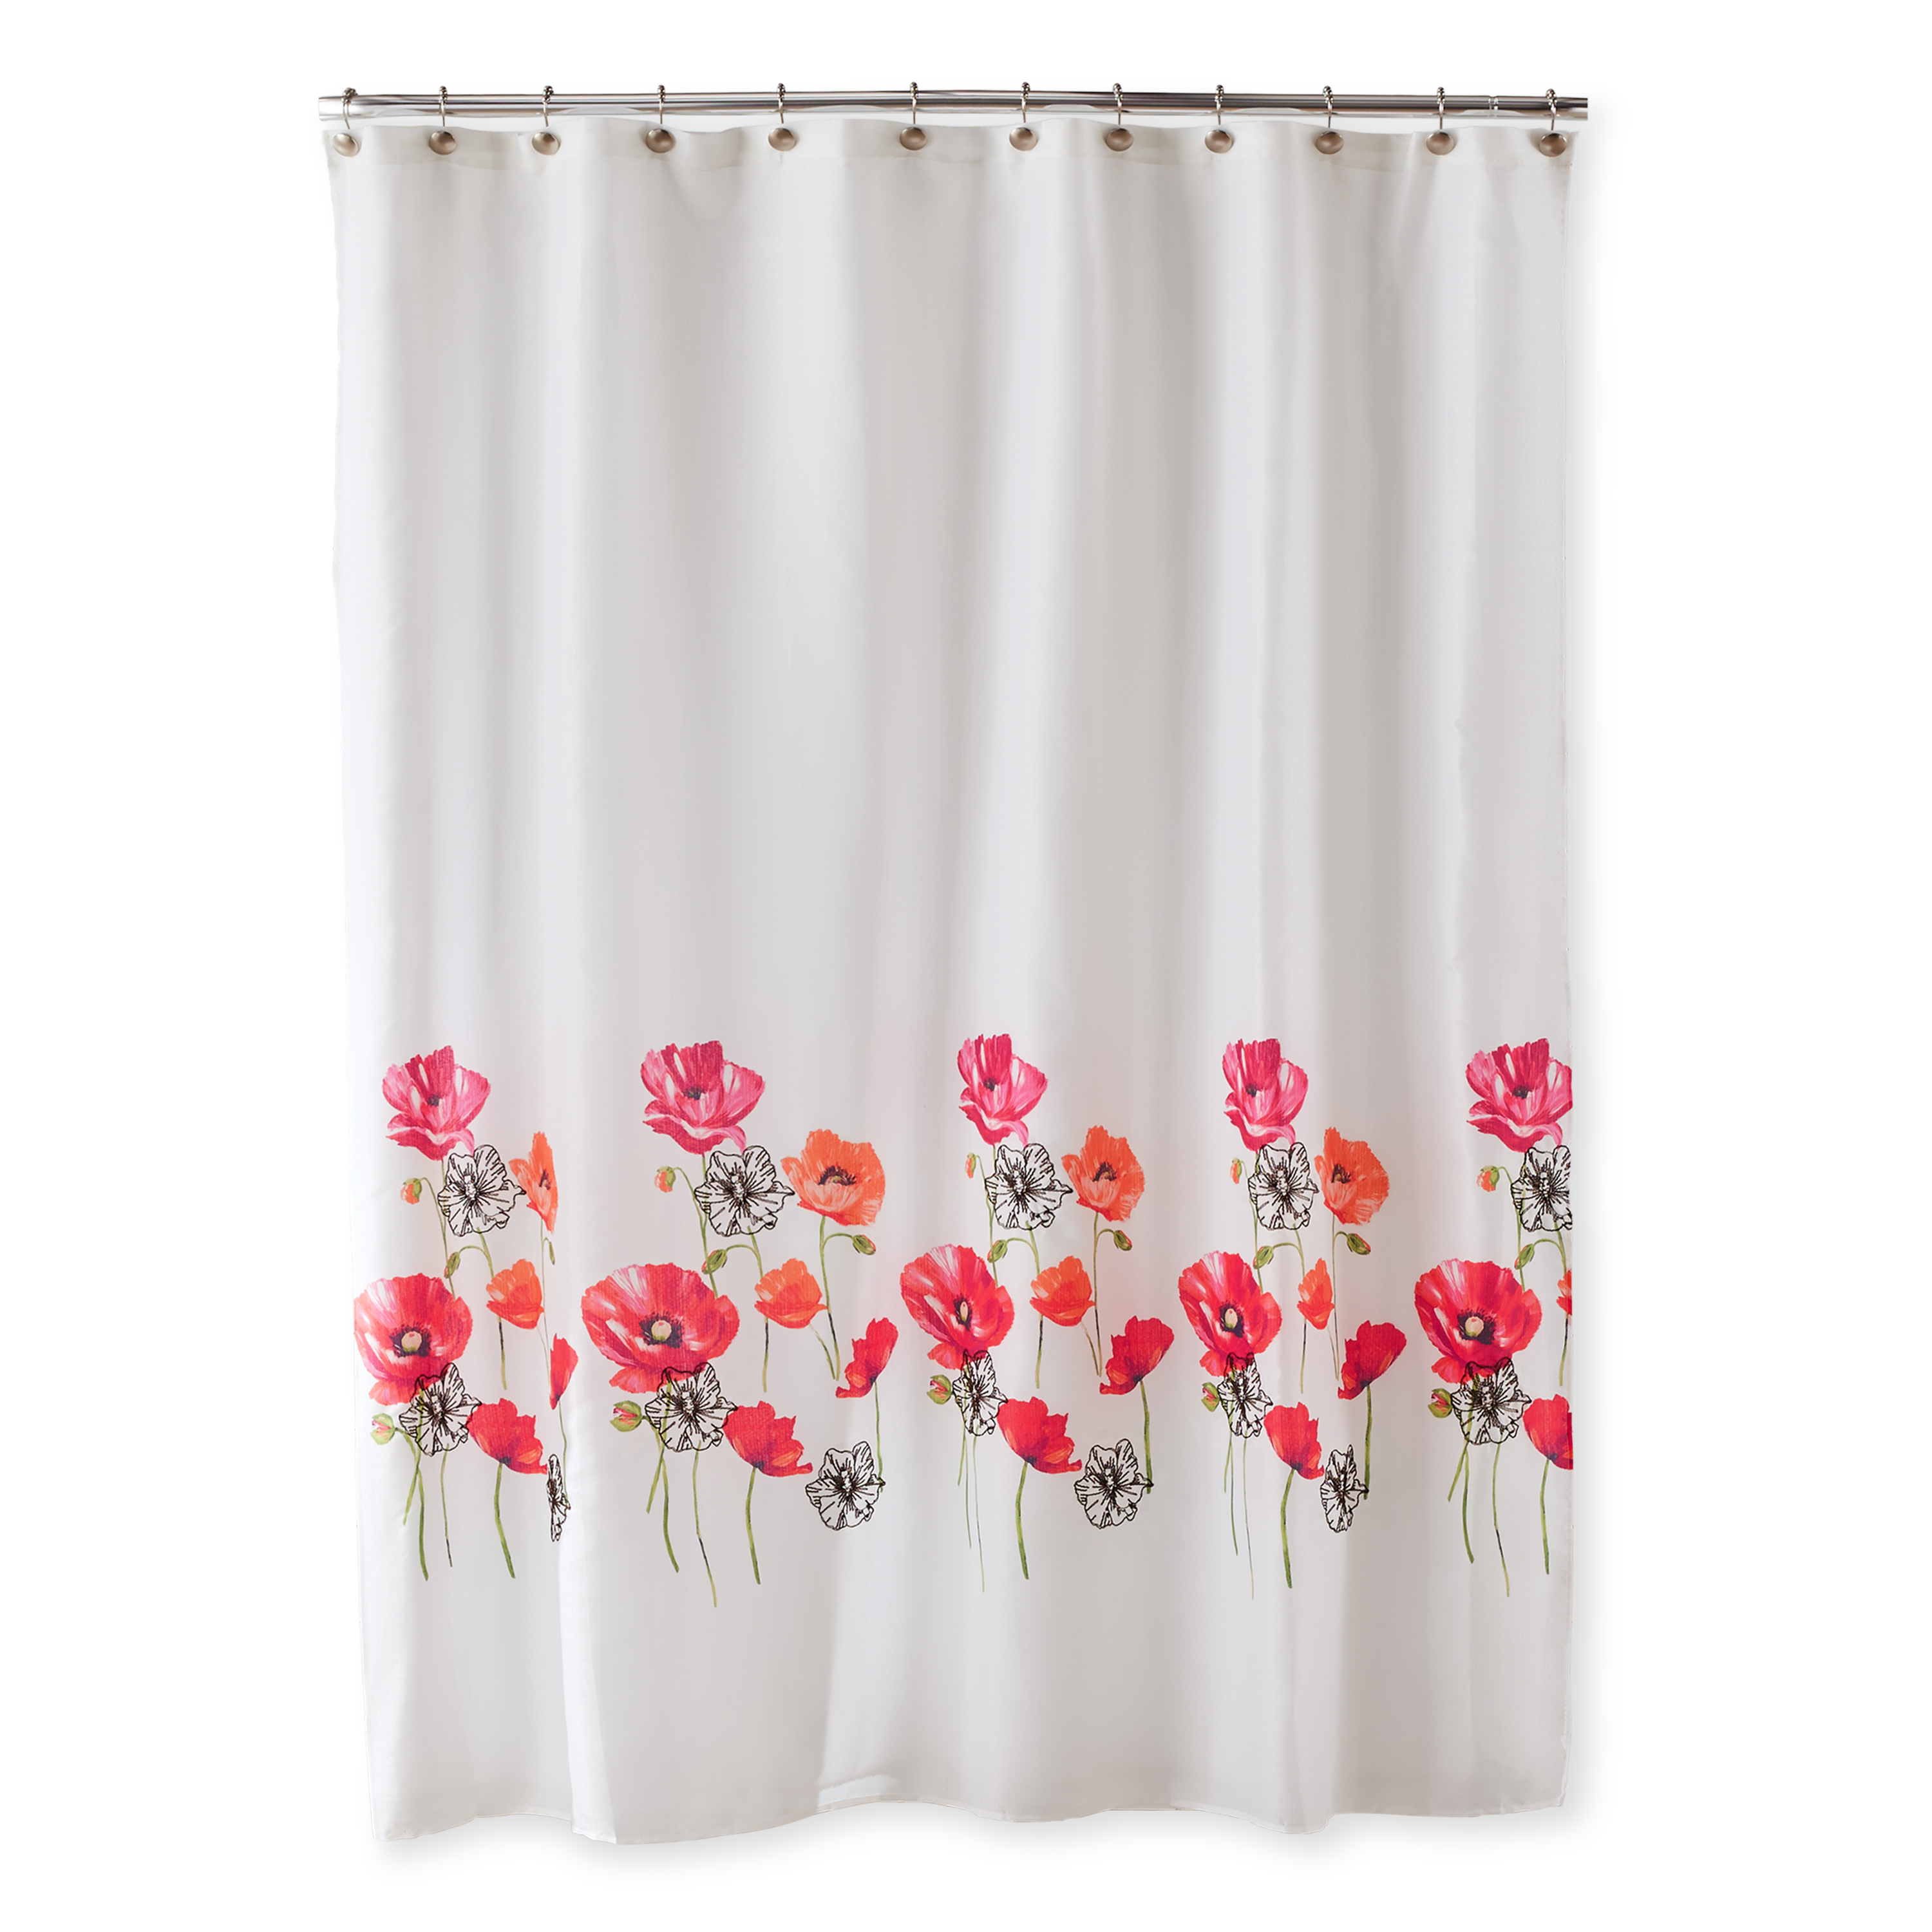 Better Homes & Gardens Embellished Poppies Shower Curtain